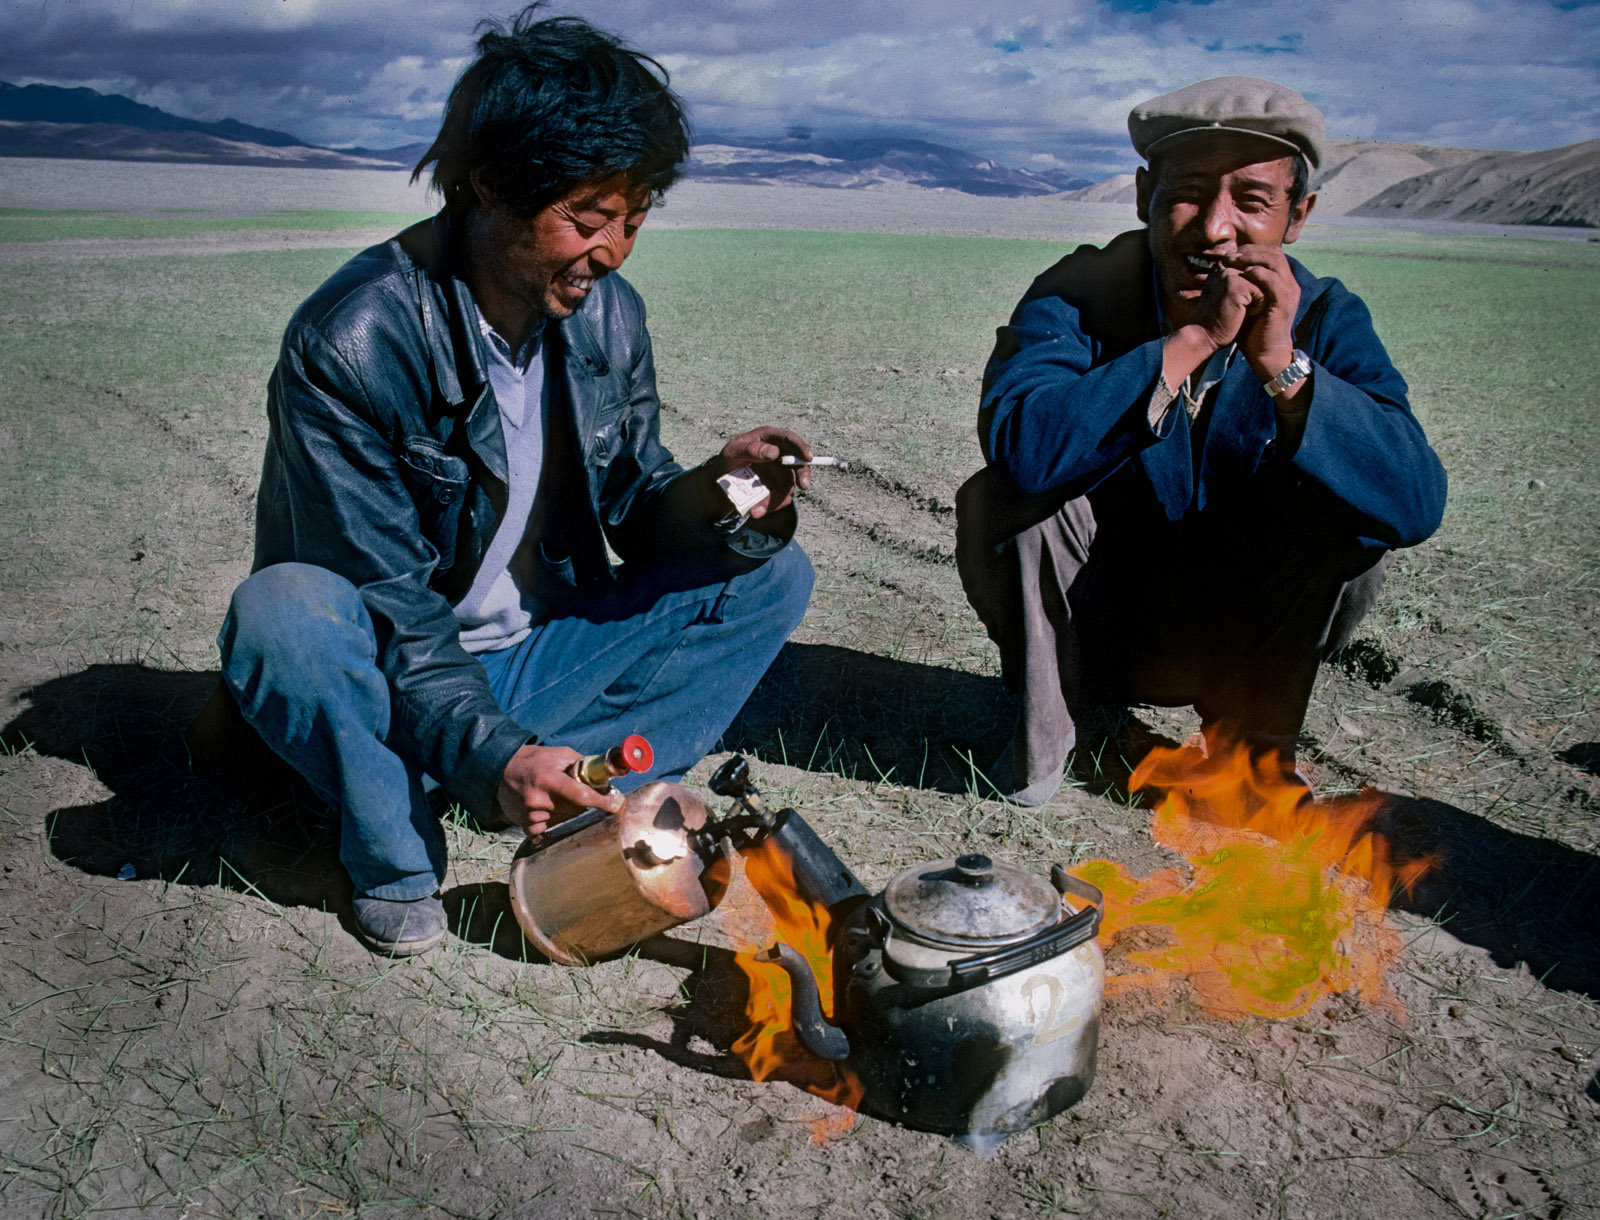 Gyatso, our Tibetan truck driver, brews up a pot of yak butter tea with his tiger torch. Changtang Plateau, Tibet. 1987